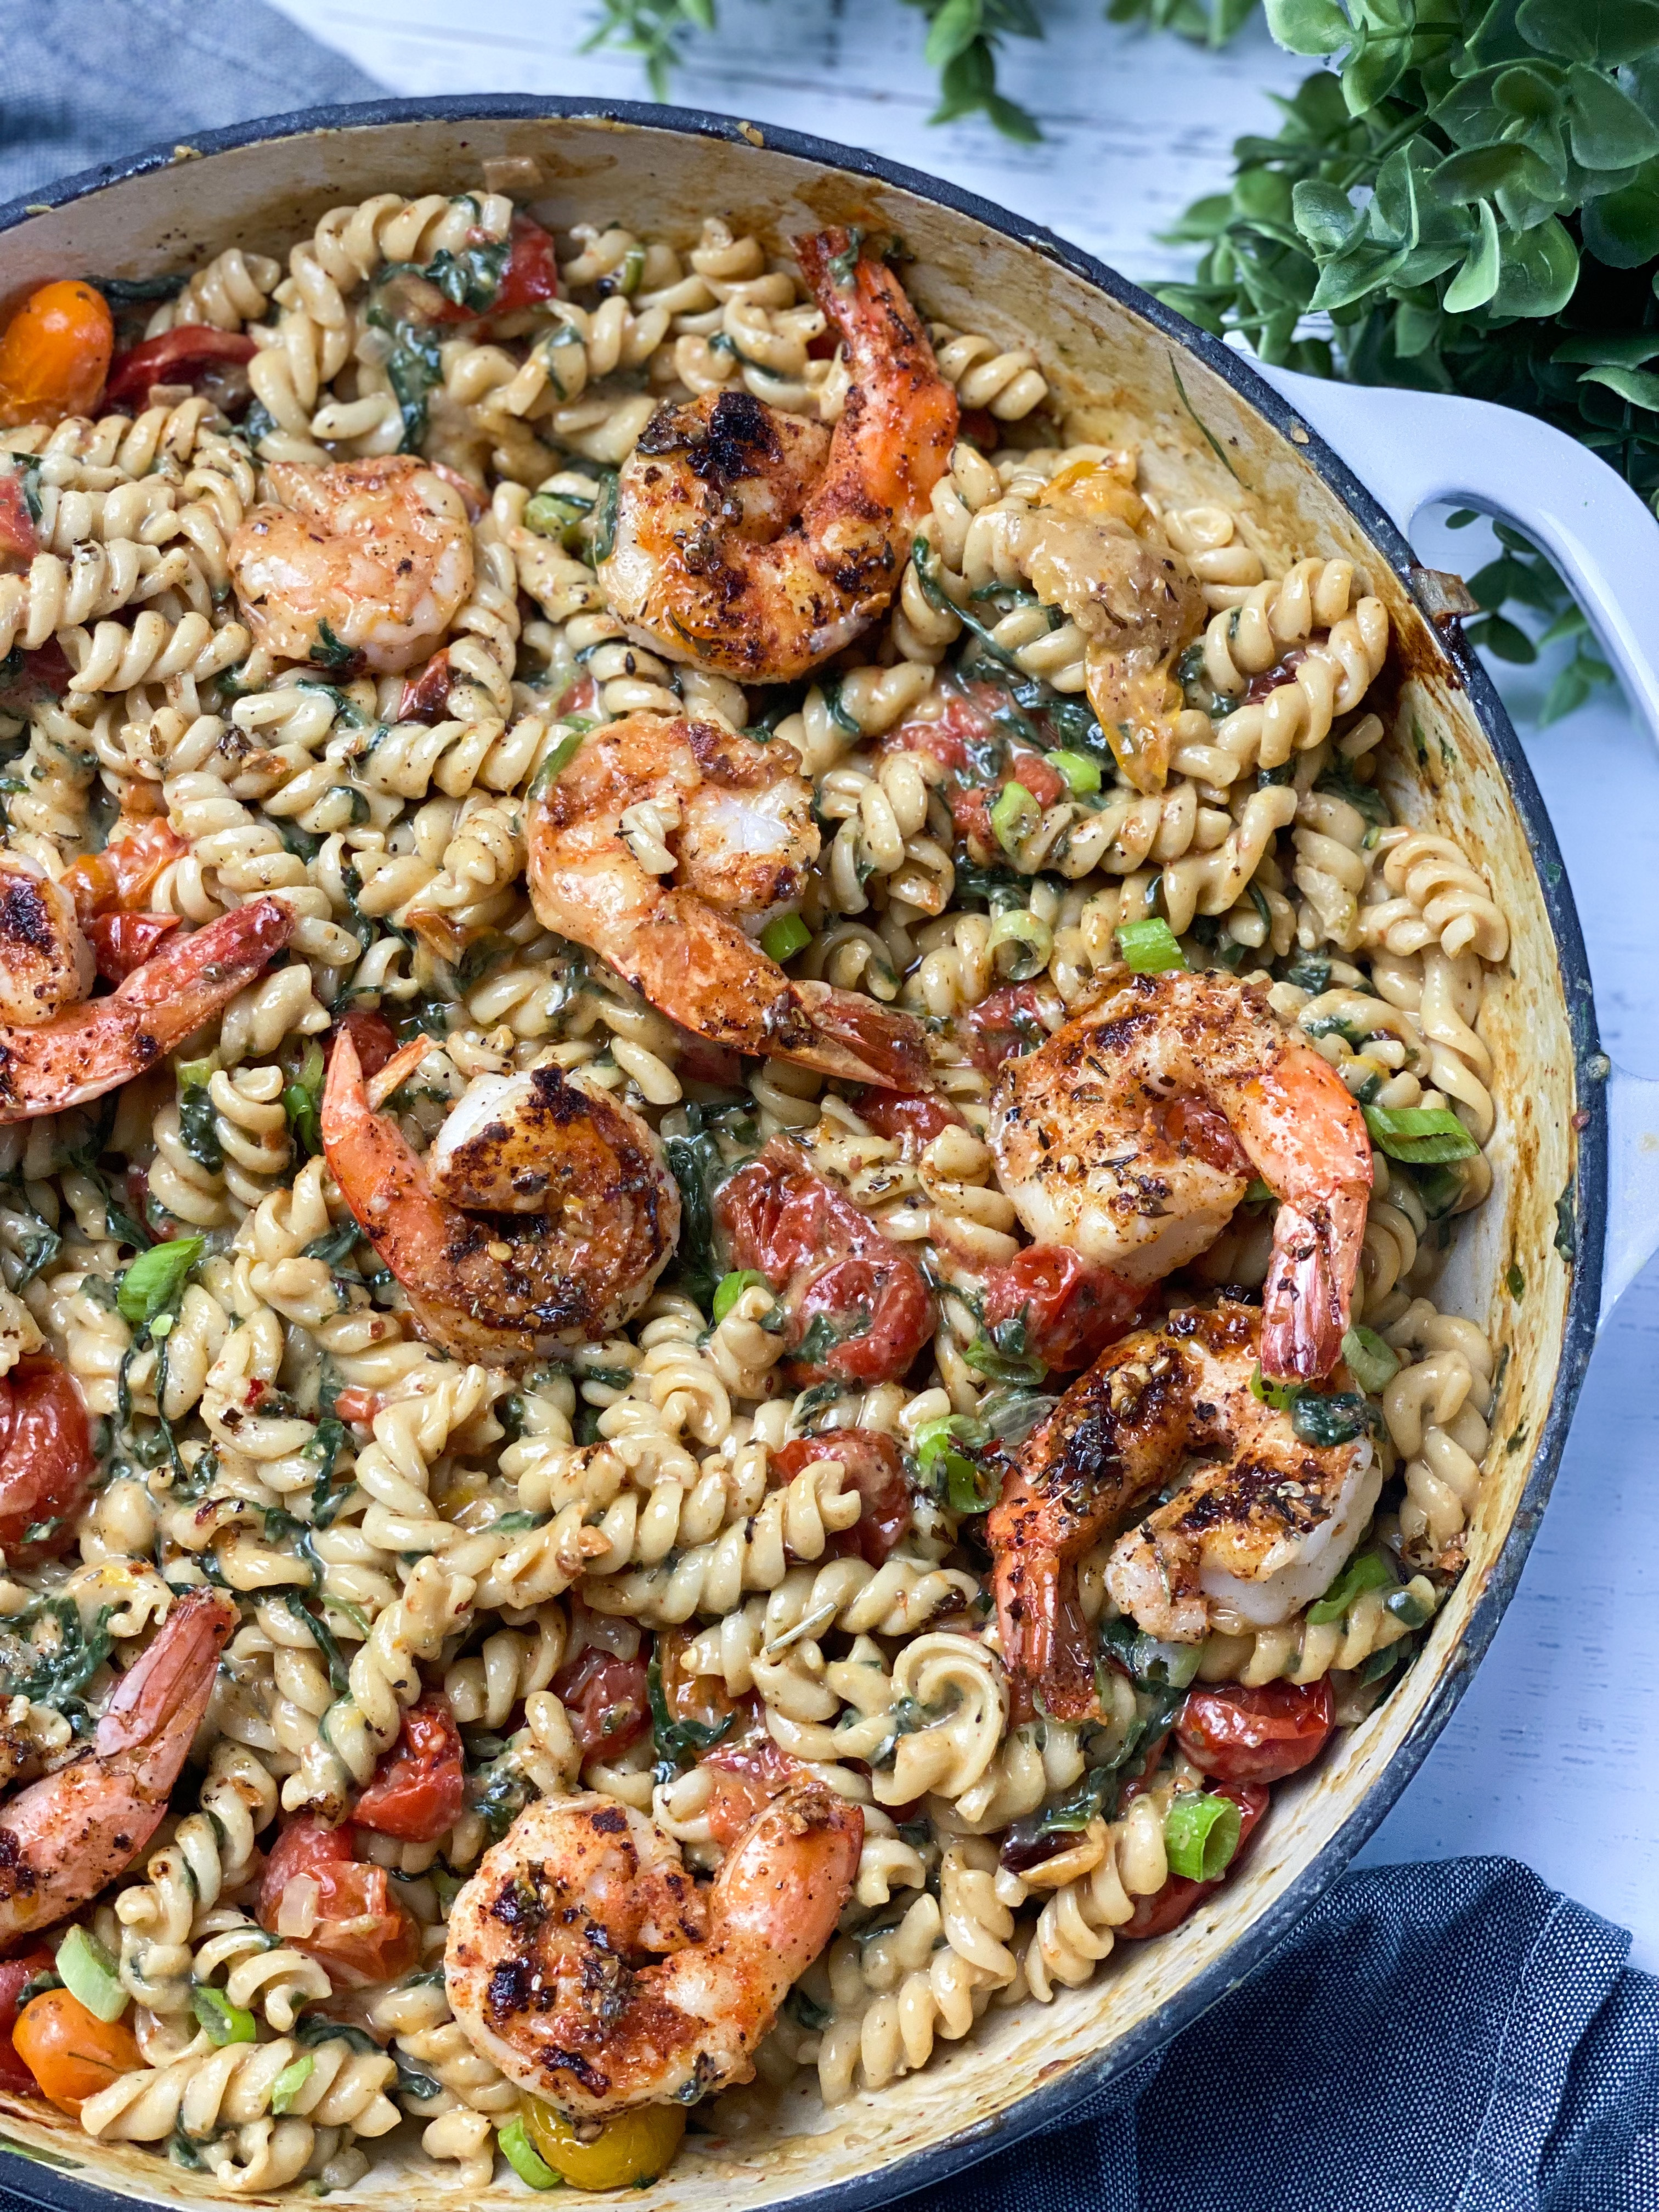 Cajun Shrimp Over Creamy Fusilli Pasta With Spinach & Roasted Tomatoes